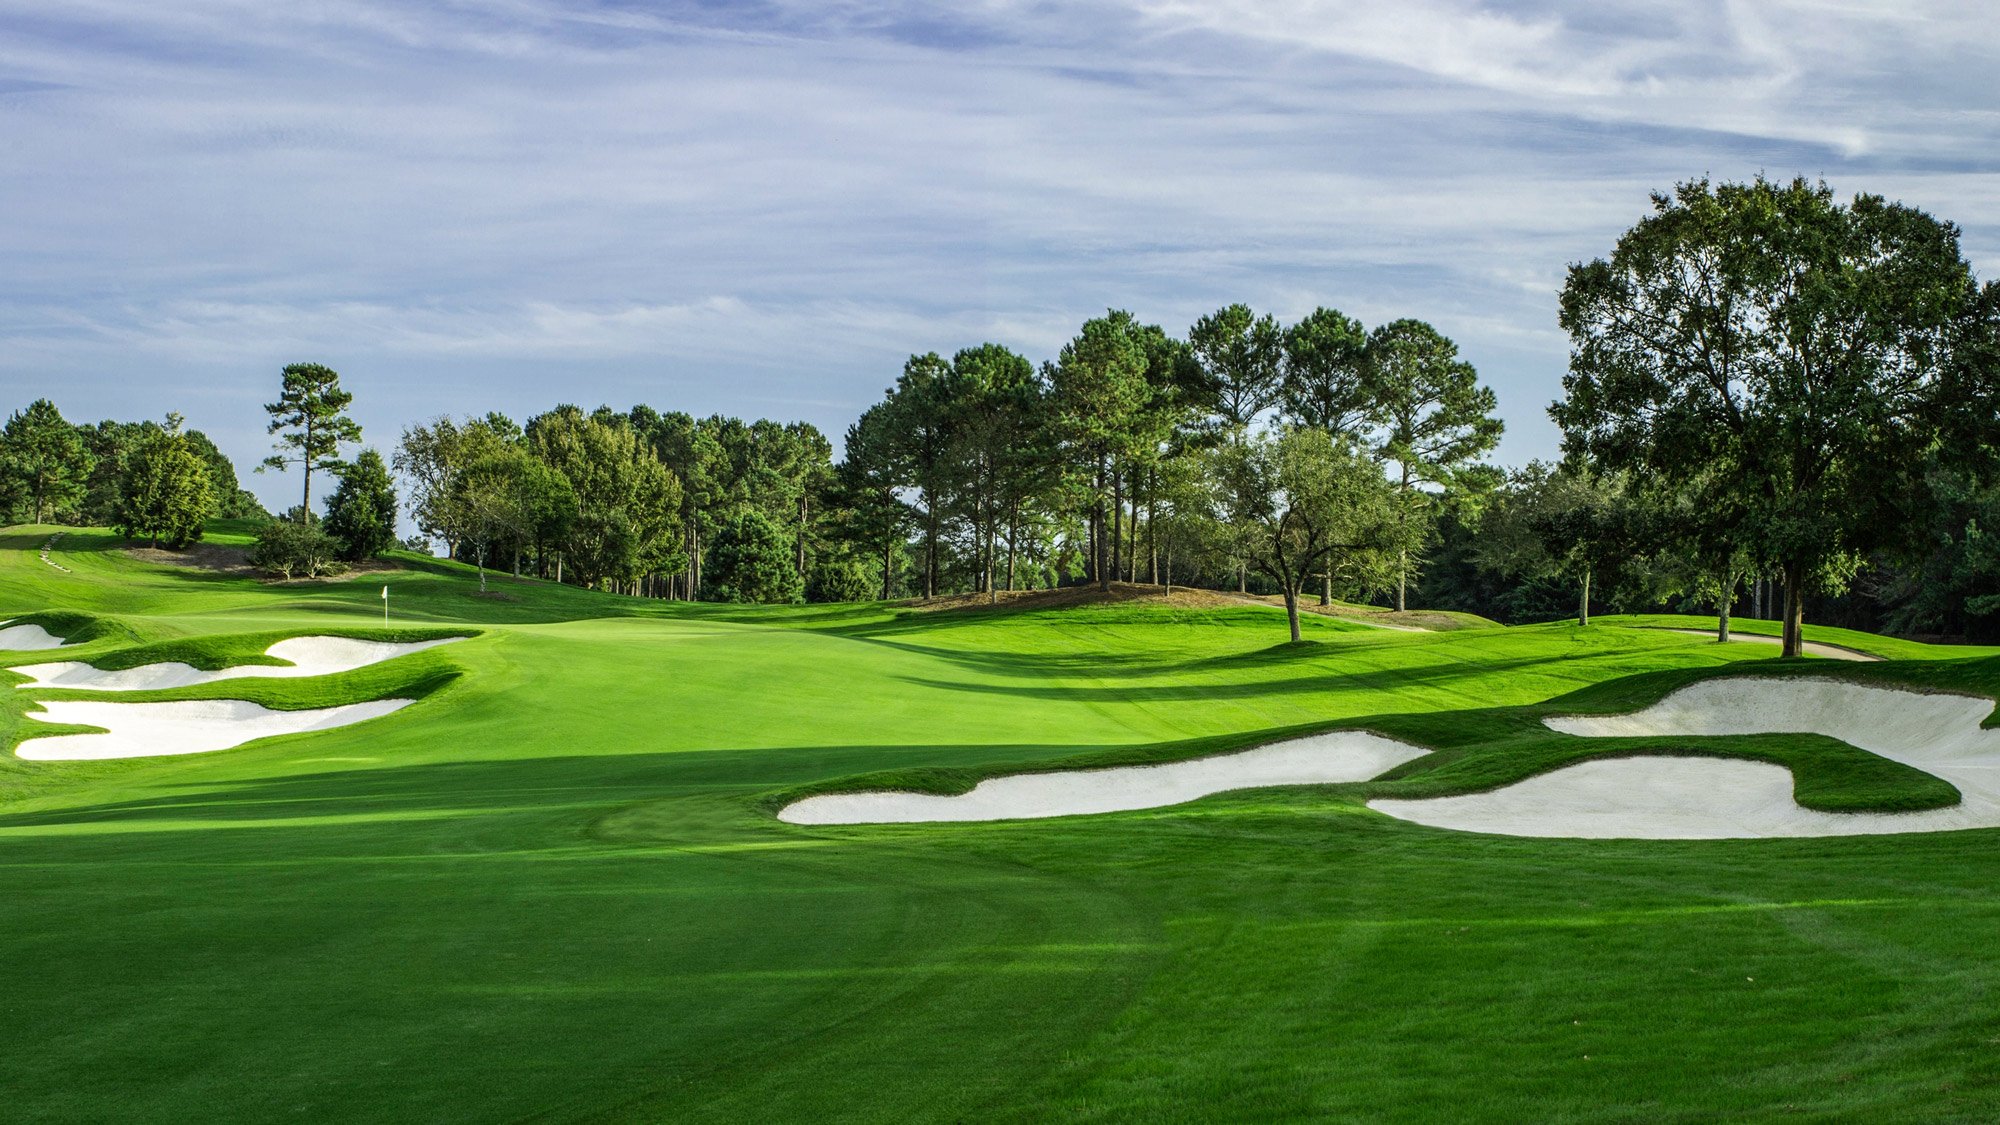 Quail Hollow welcomes the 2017 PGA Championship in August, so pinch-hitting in May as the host of the Wells Fargo Championship is this gorgeous Tom Fazio creation in Wilmington, N.C. The course edges the Intracoastal Waterway and features bold, handsomely sculpted bunkers and vast, rippling greens.